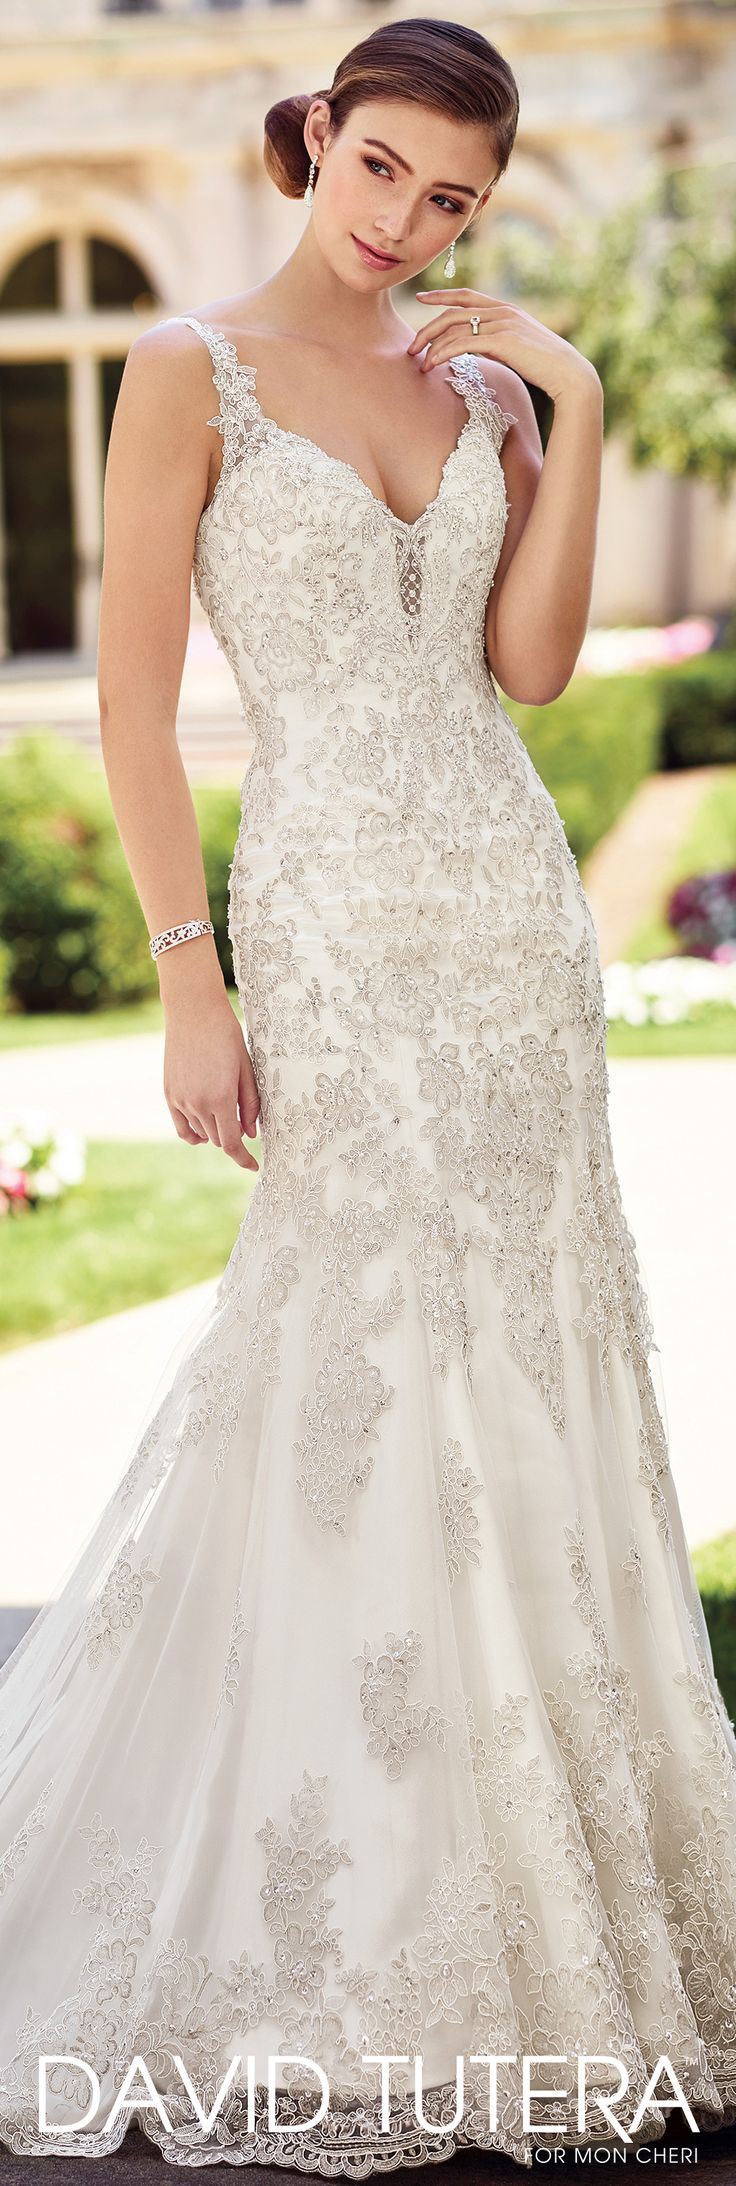 Best wedding dresses near me   best wedding gowns images on Pinterest  Homecoming dresses